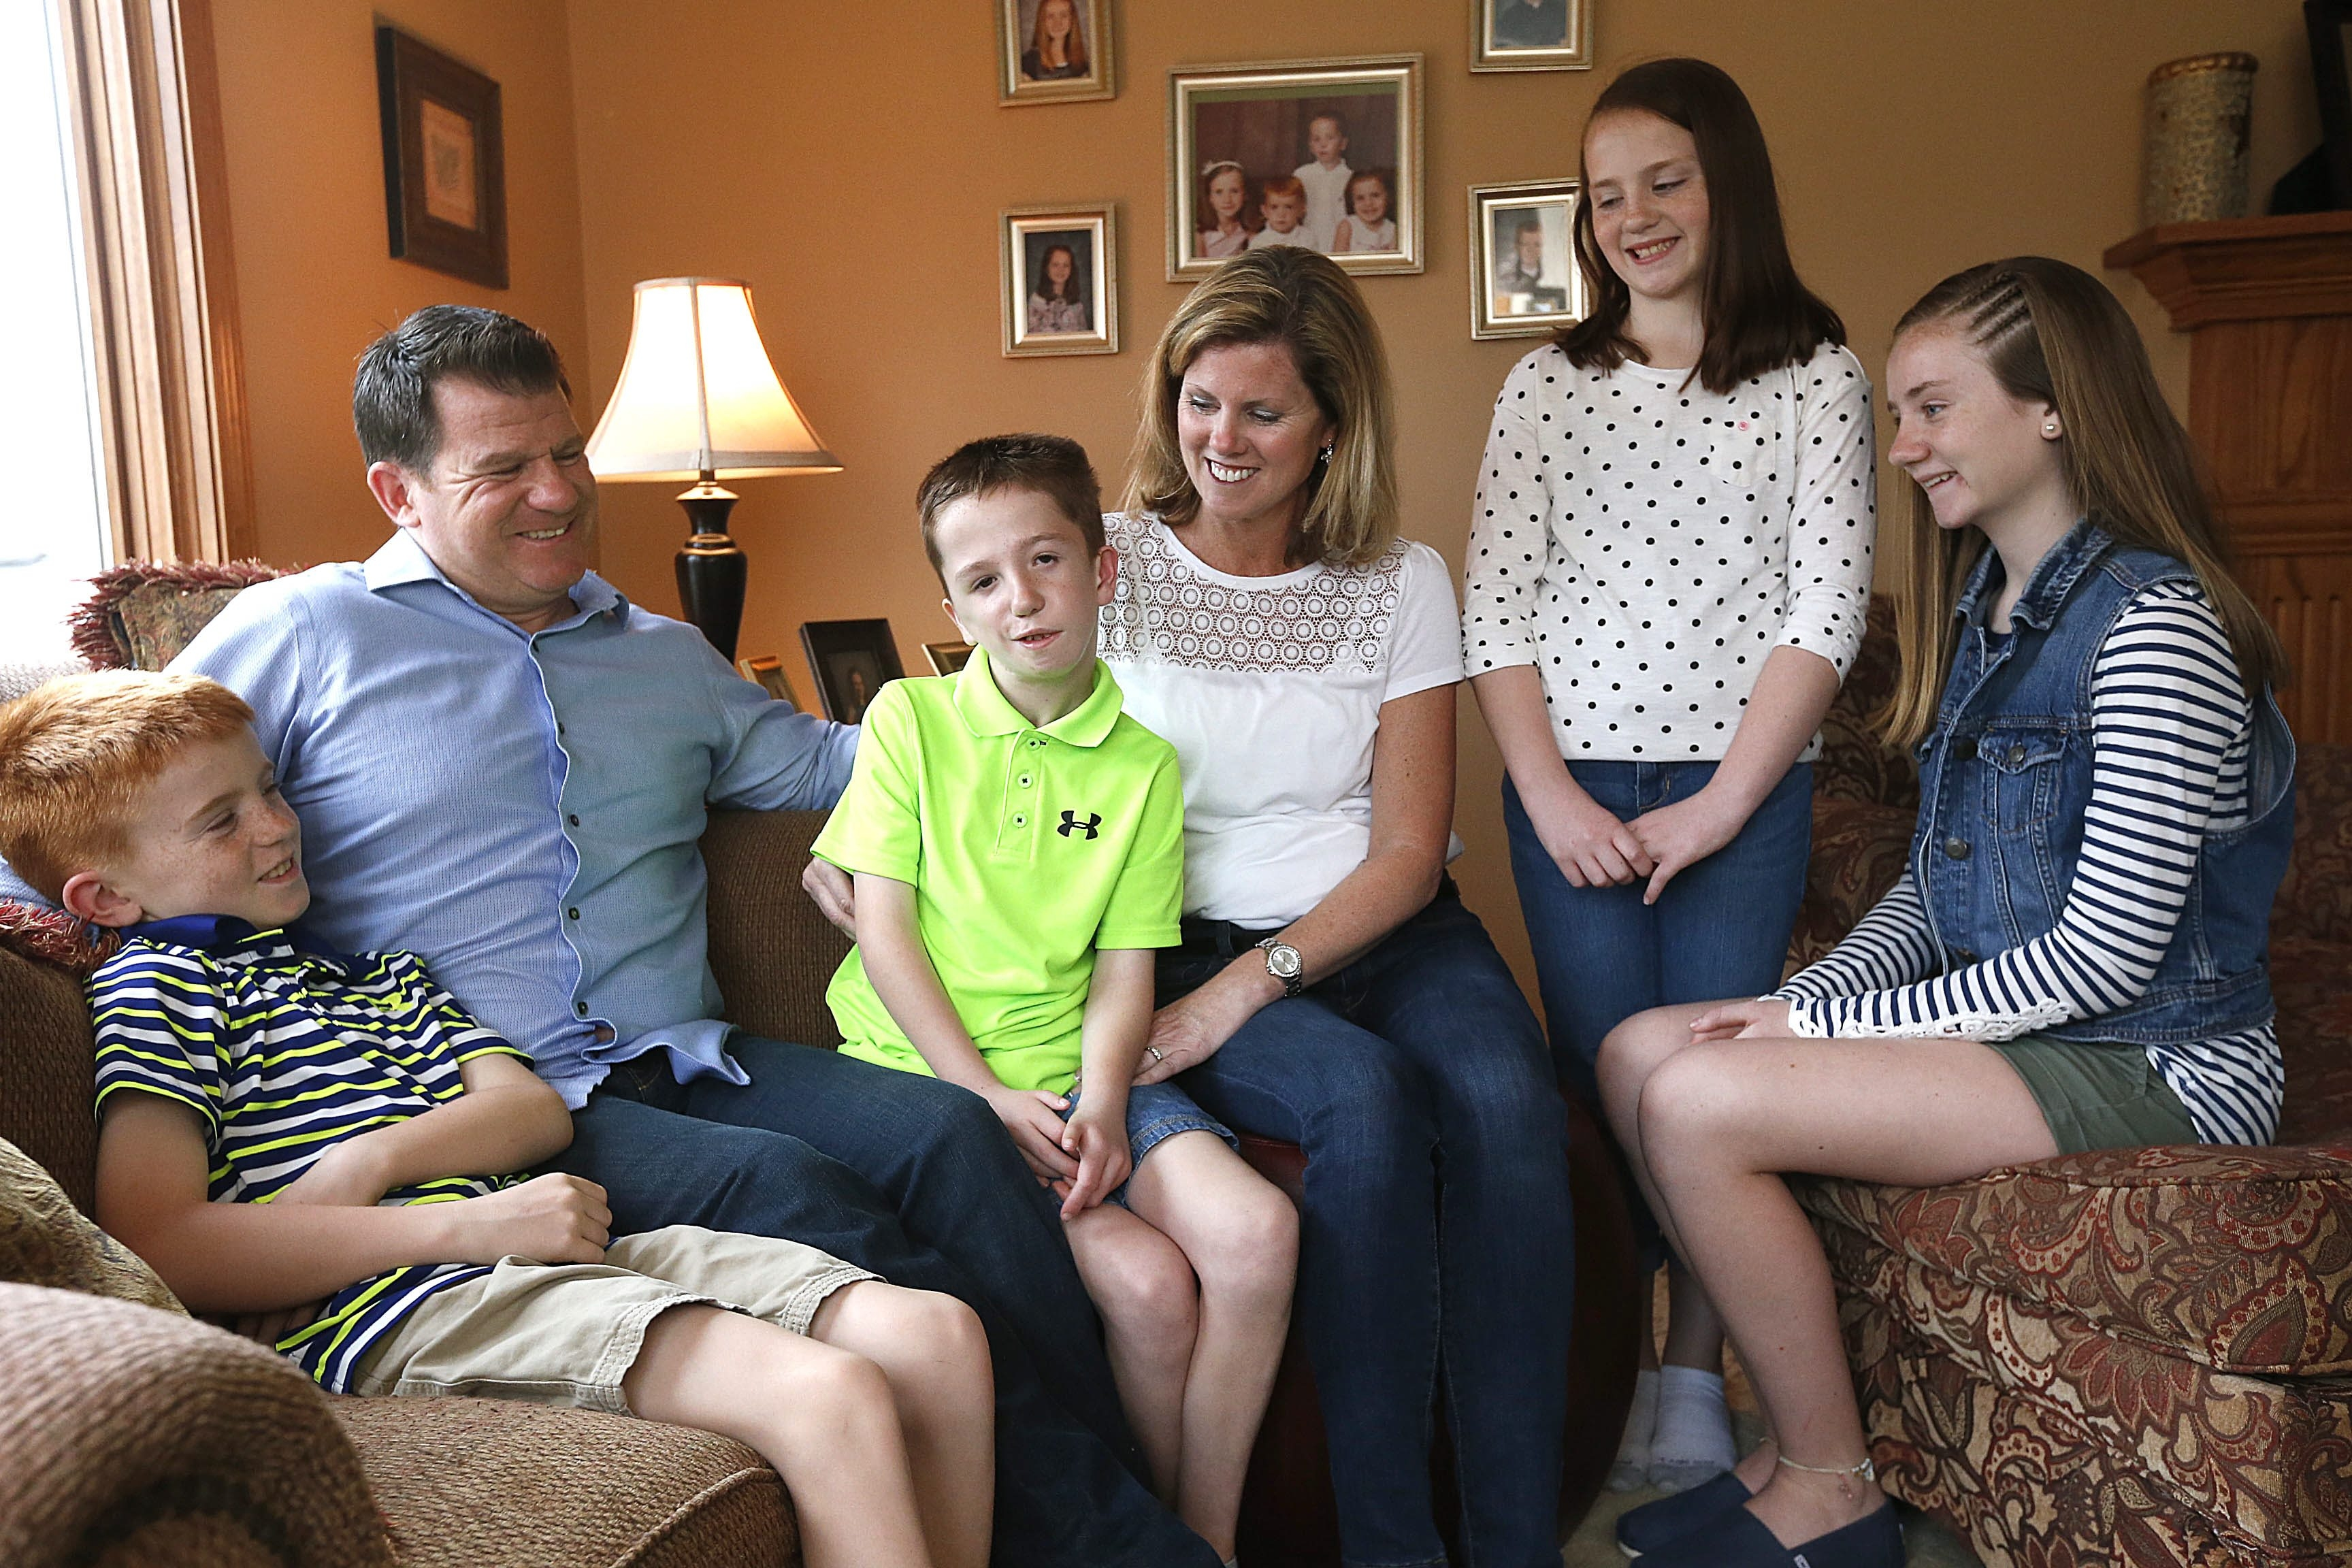 Colleen and Vincent Vanderlip at their West Seneca home with their four children, from left, Ryan, 9, Conor, 11, Grace, 11, and Madison, 14.